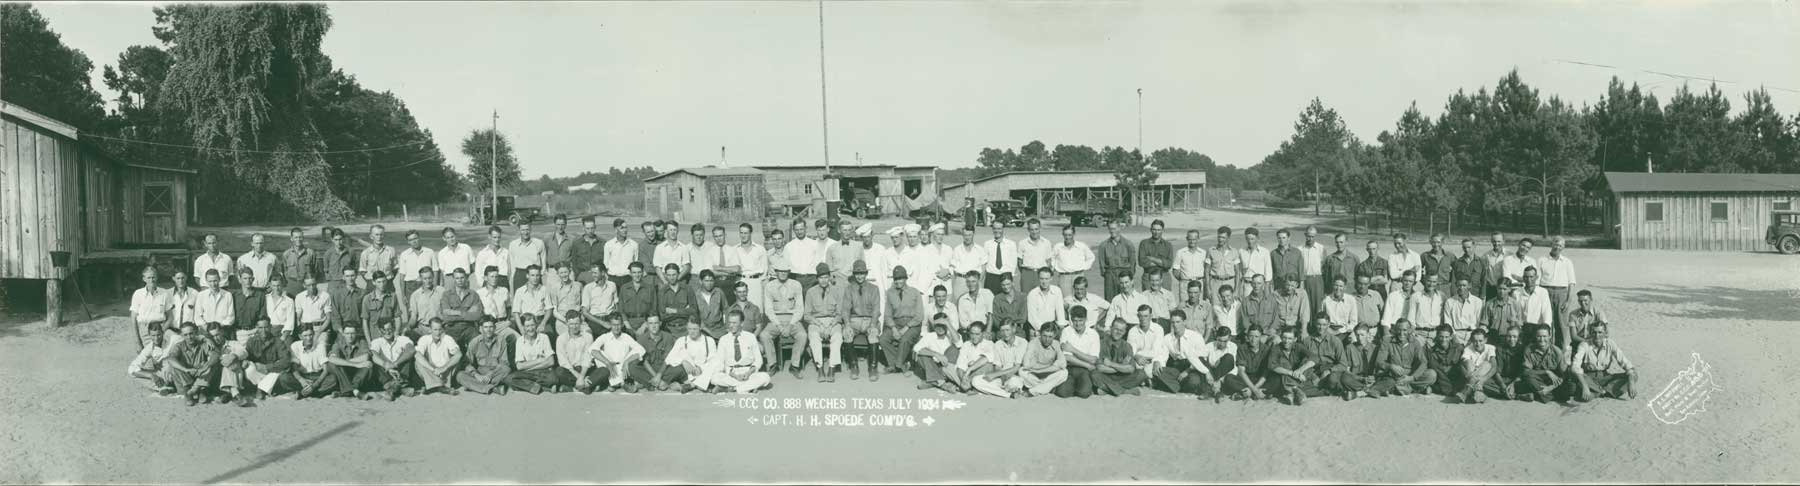 "panoramic shot of assembled CCC Company #888. Text at bottom says ""CCC Co 888 Weches Texas July 1934, Capt. H.H. Spoede Com'd'g."""